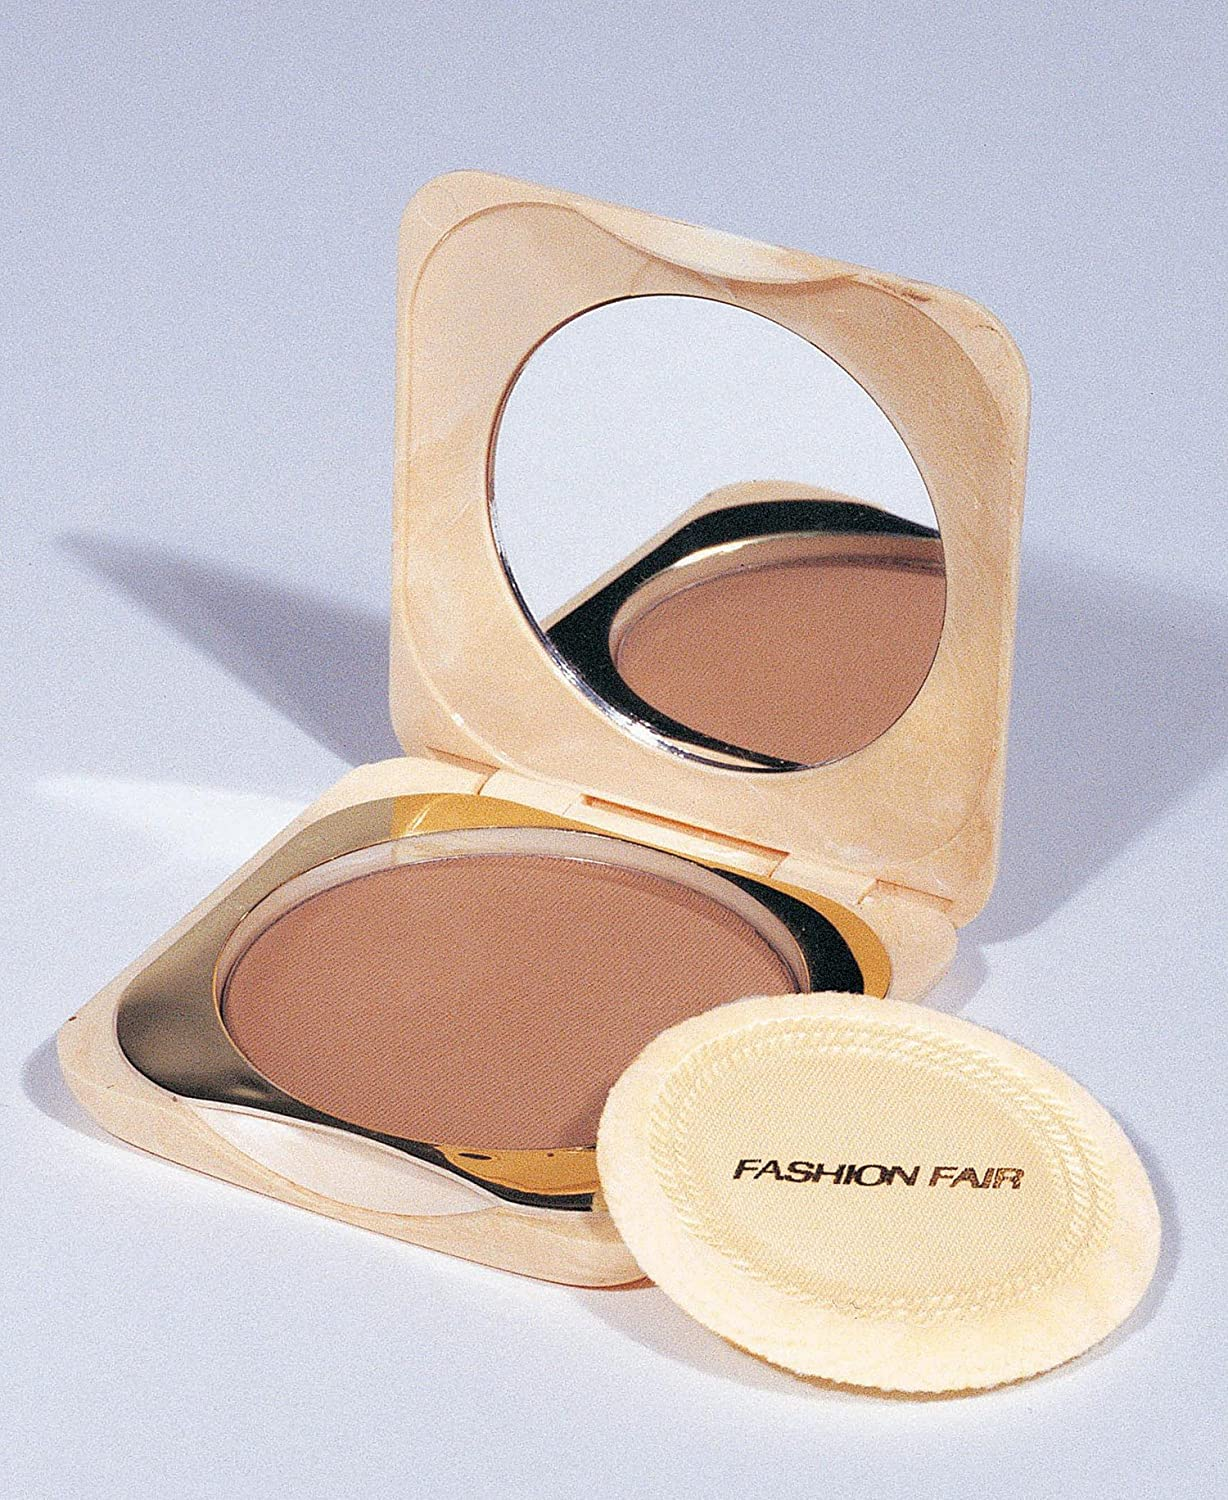 Fashion Fair Pressed Powder Walnut Fashion Fair Transglo Pressed